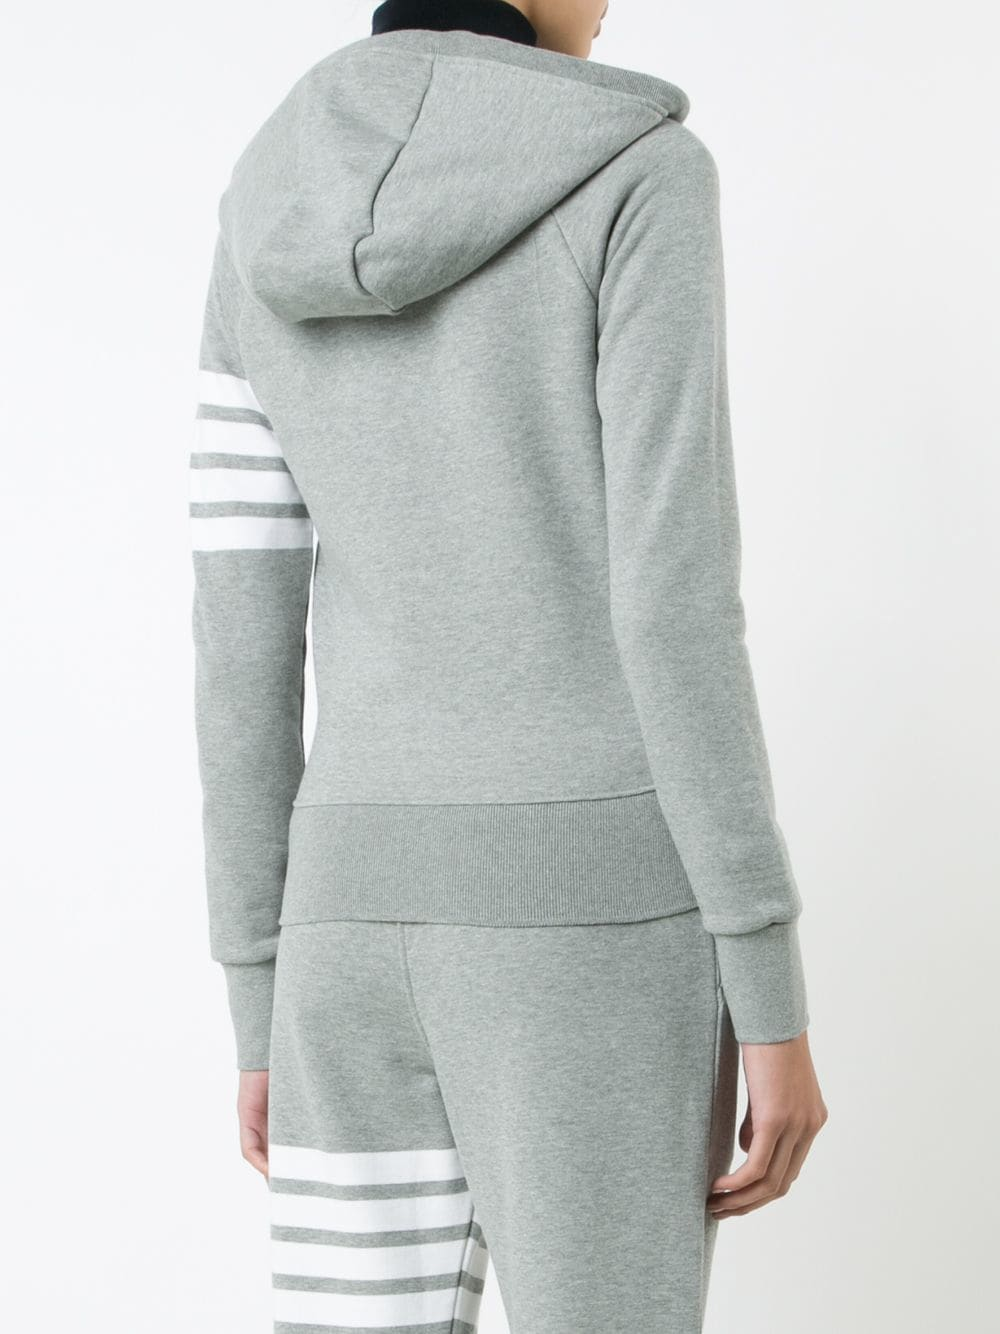 THOM BROWNE WOMEN ZIP UP HOODIE IN CLASSIC LOOP BACK W/ ENGINEERED 4 BAR